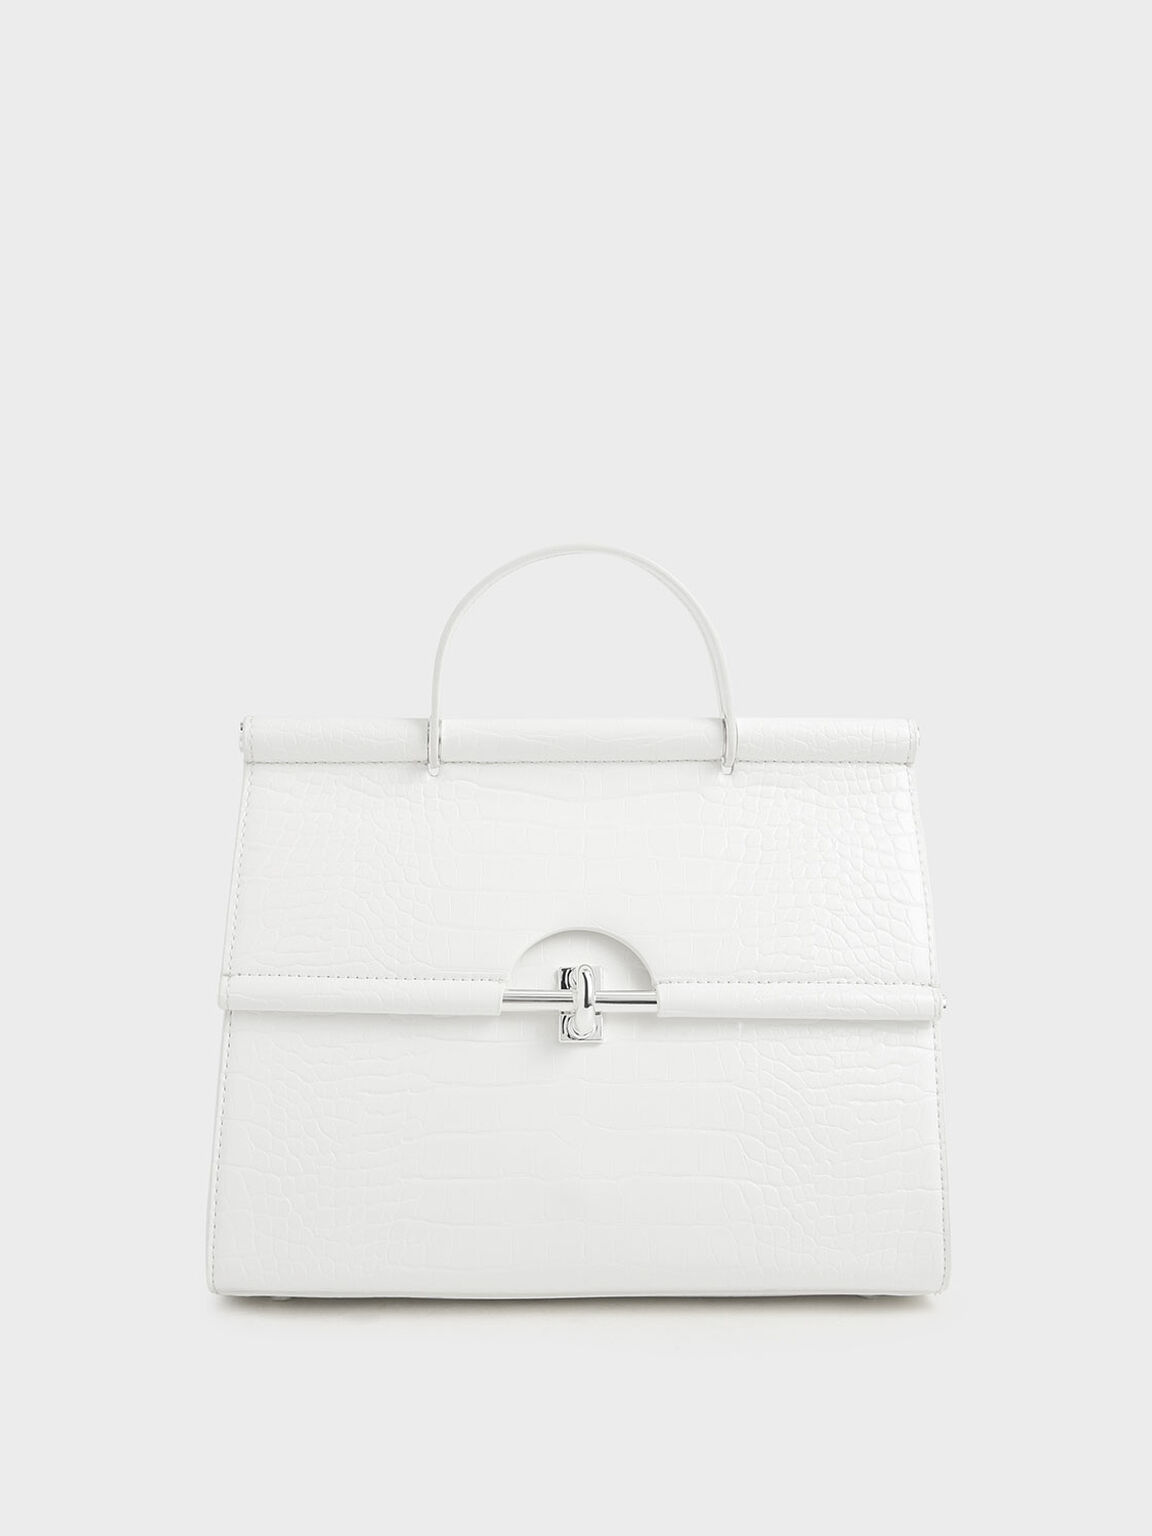 Croc-Effect Structured Single Top Handle Bag, White, hi-res